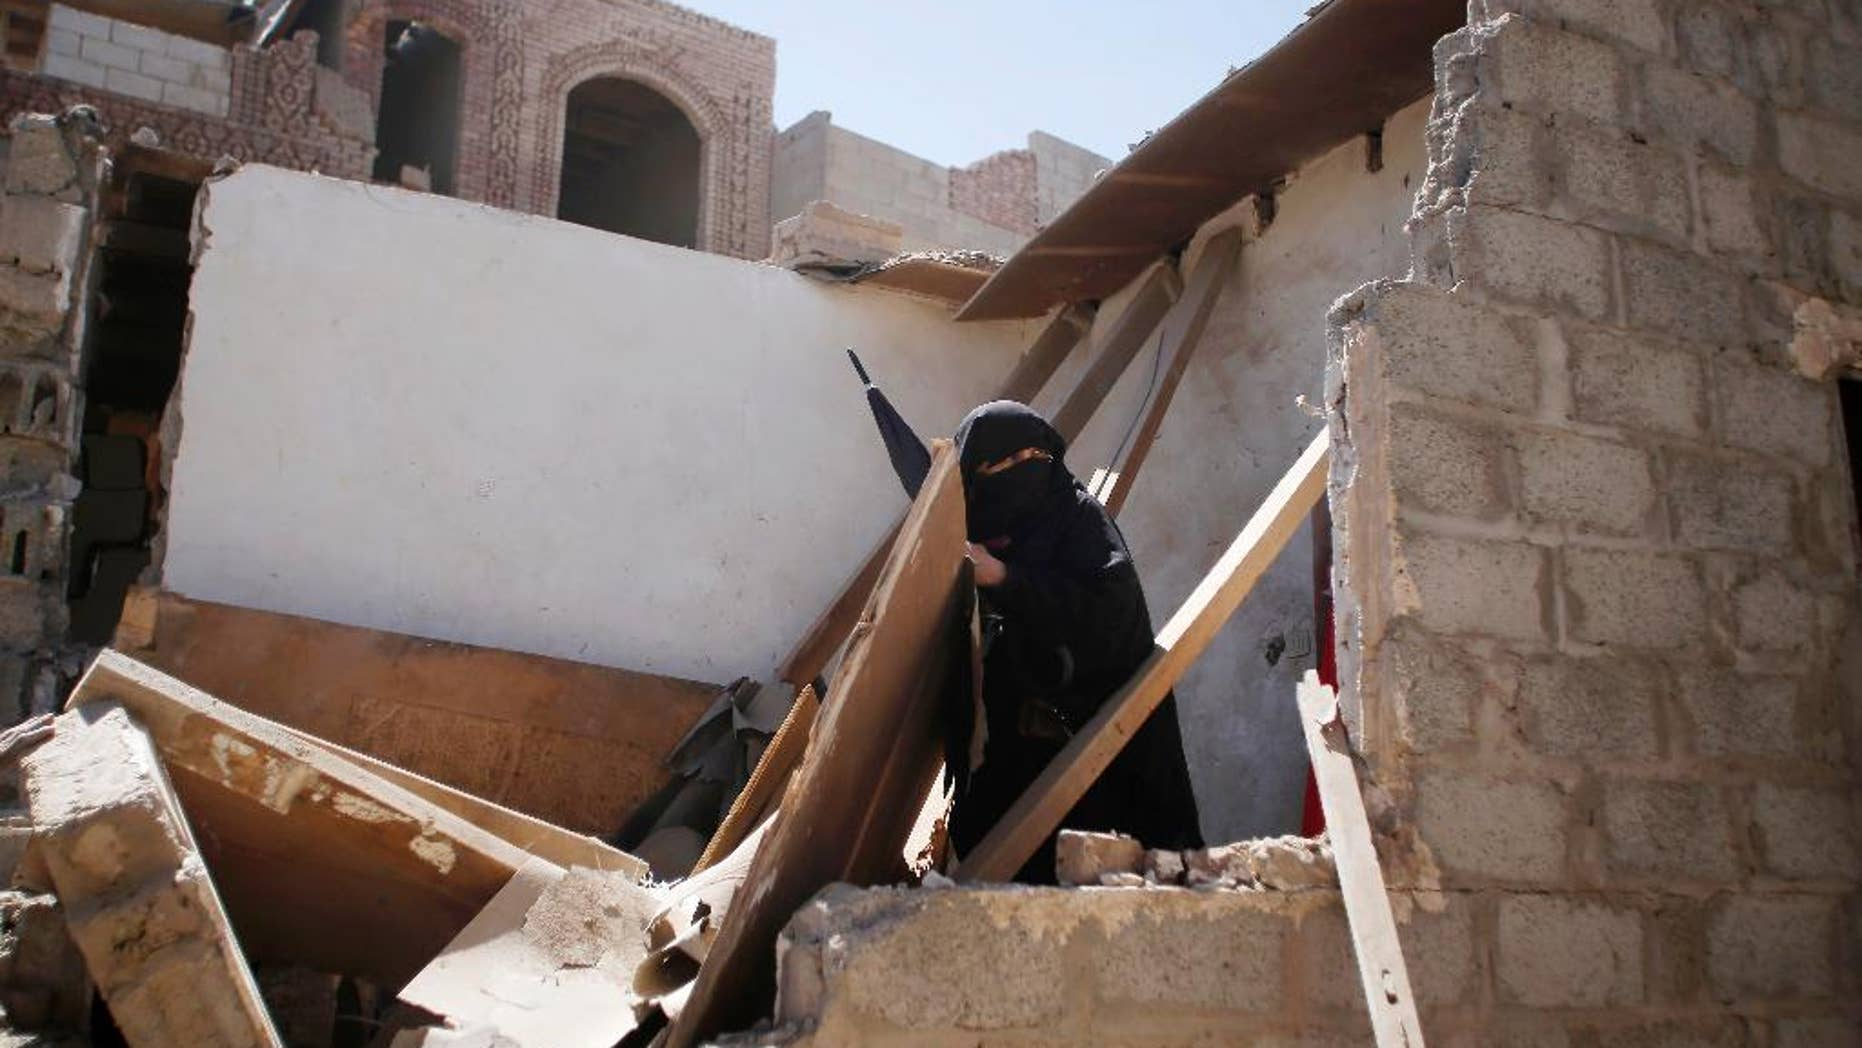 A woman stands on her house destroyed by Saudi-led airstrikes in Sanaa, Yemen, Friday, May 1, 2015. Saudi Arabia leads a coalition of mostly Sunni Arab countries conducting airstrikes against the rebels who have overrun the Yemeni capital, Sanaa, and forced the Western-backed president, Abed Rabbo Mansour Hadi, to flee the country. (AP Photo/Hani Mohammed)